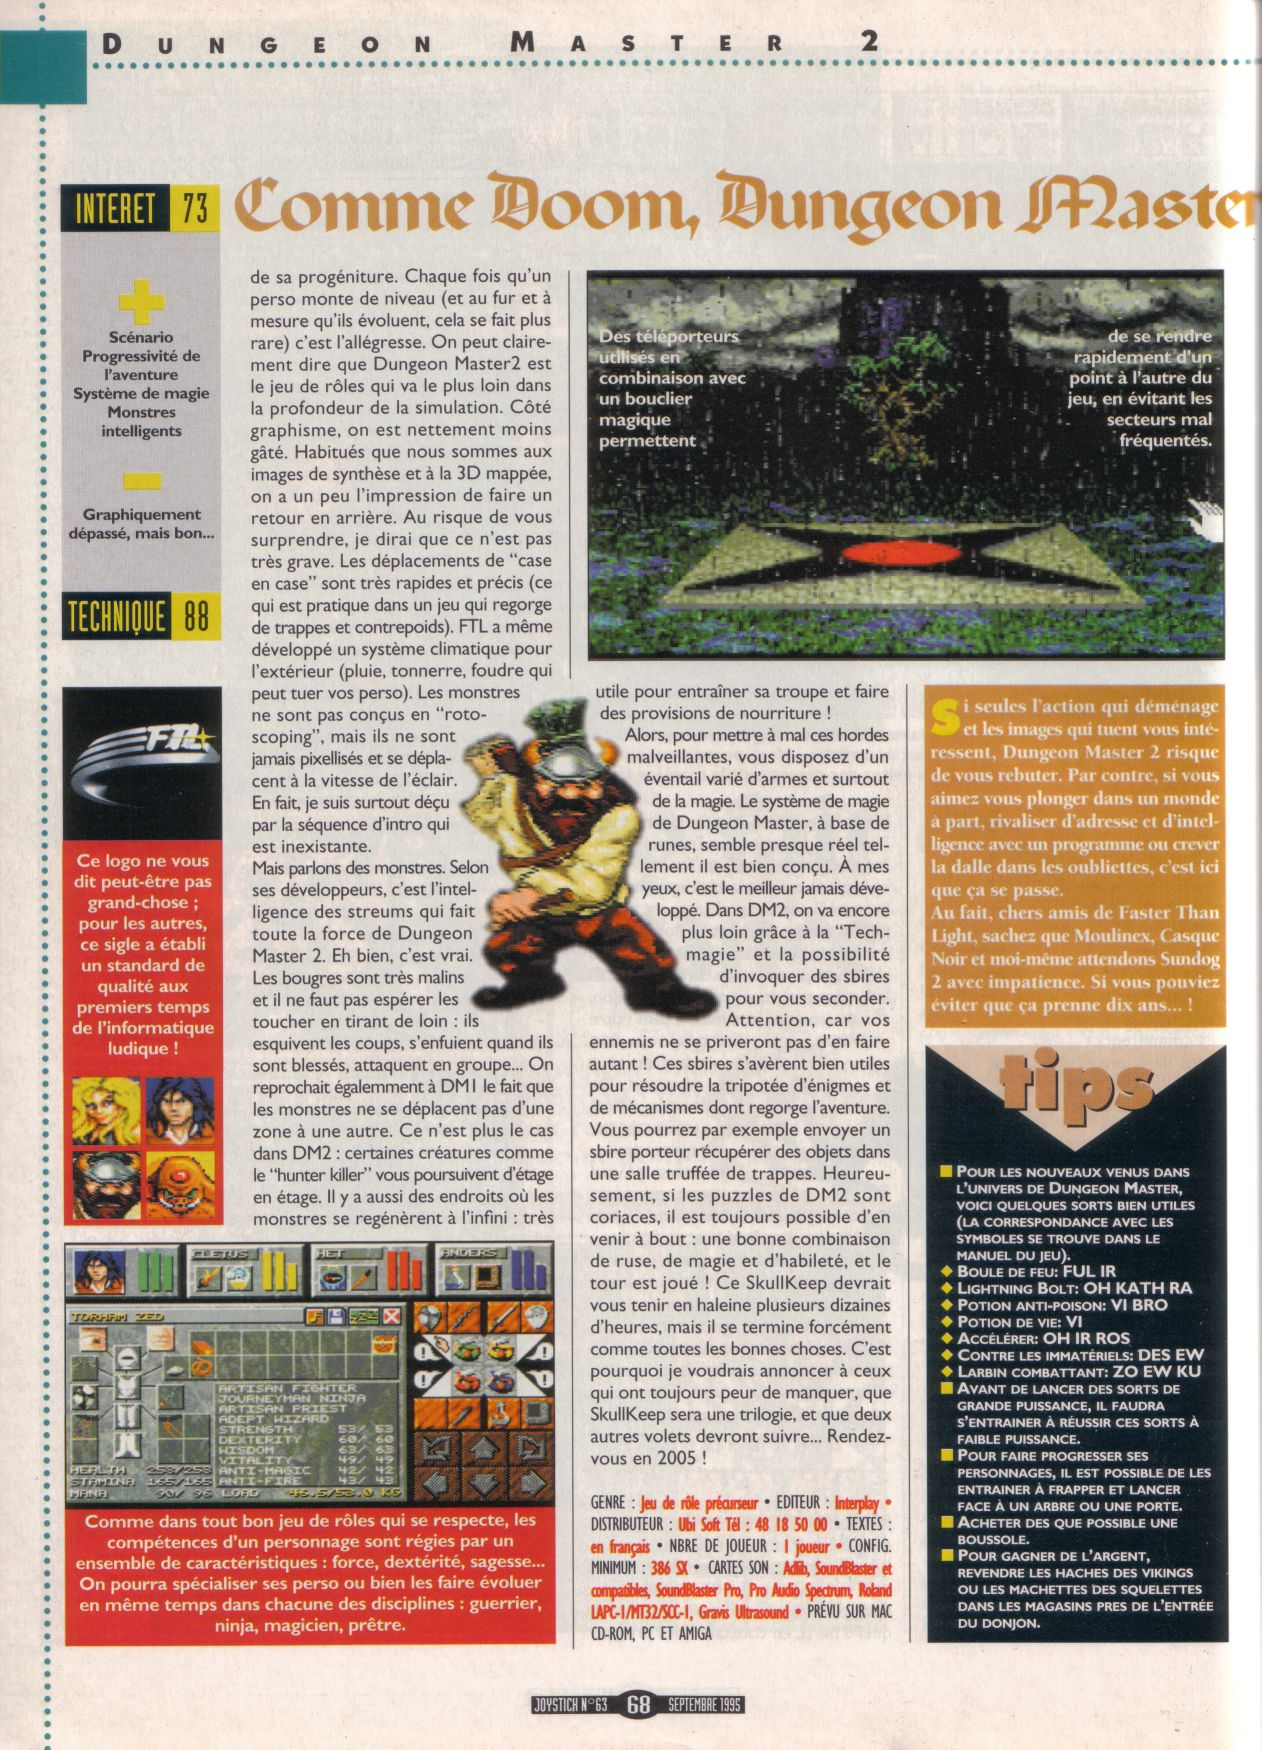 Dungeon Master II for PC Review published in French magazine 'Joystick', Issue #63, September 1995, Page 68